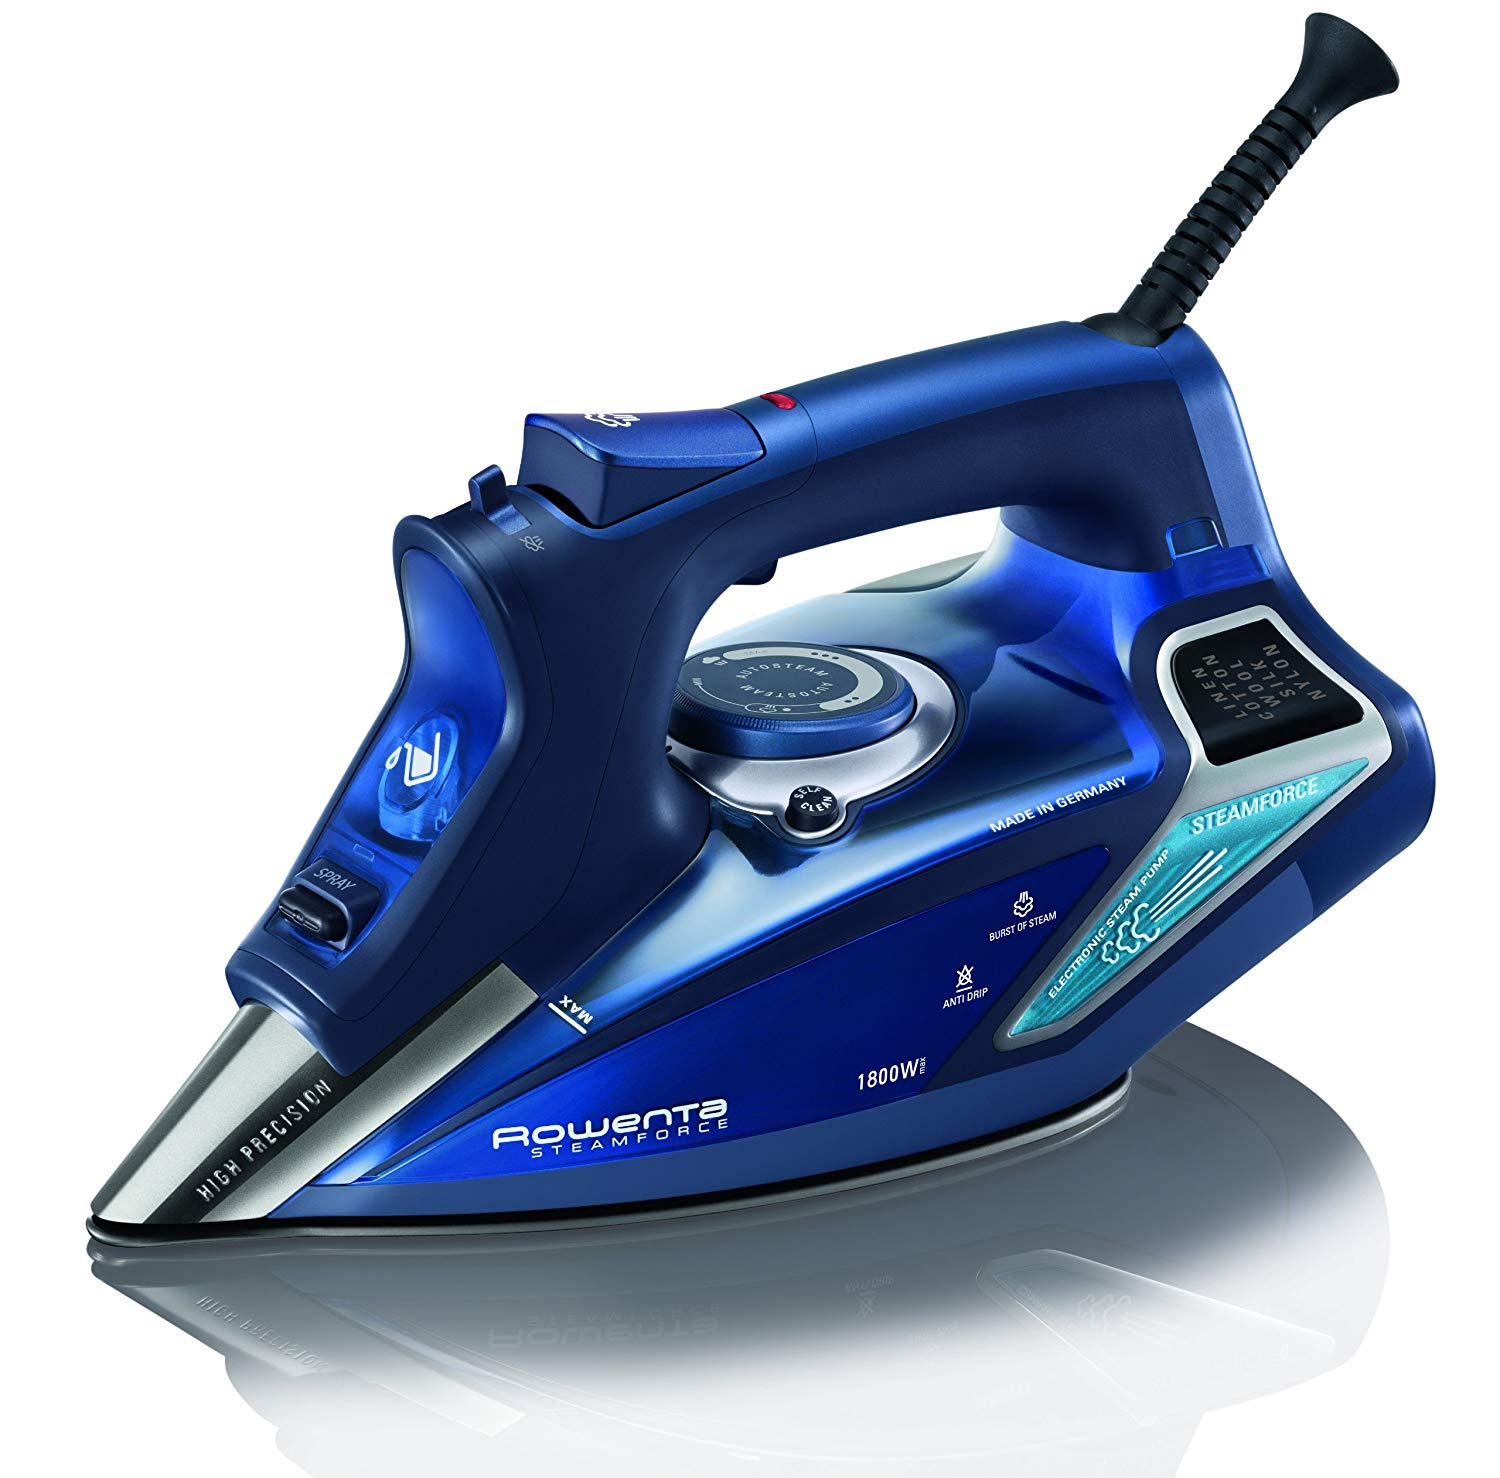 1. Rowenta Steam Iron, Stainless Steel Soleplate, Digital LED Display, Blue: